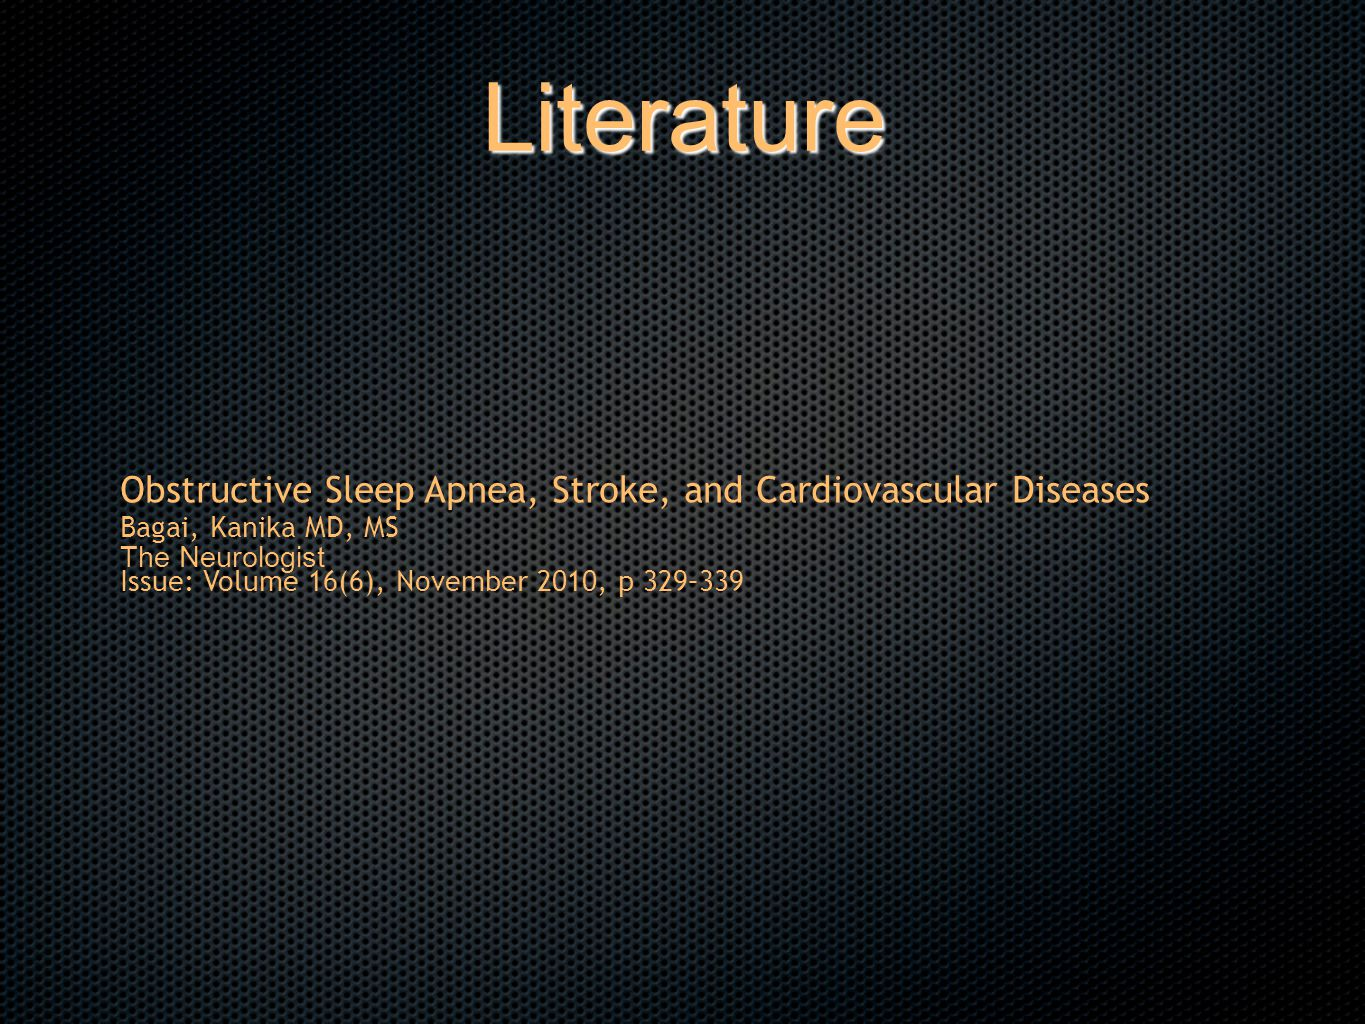 Obstructive Sleep Apnea, Stroke, and Cardiovascular Diseases Bagai, Kanika MD, MS The Neurologist Issue: Volume 16(6), November 2010, p 329–339 Literature